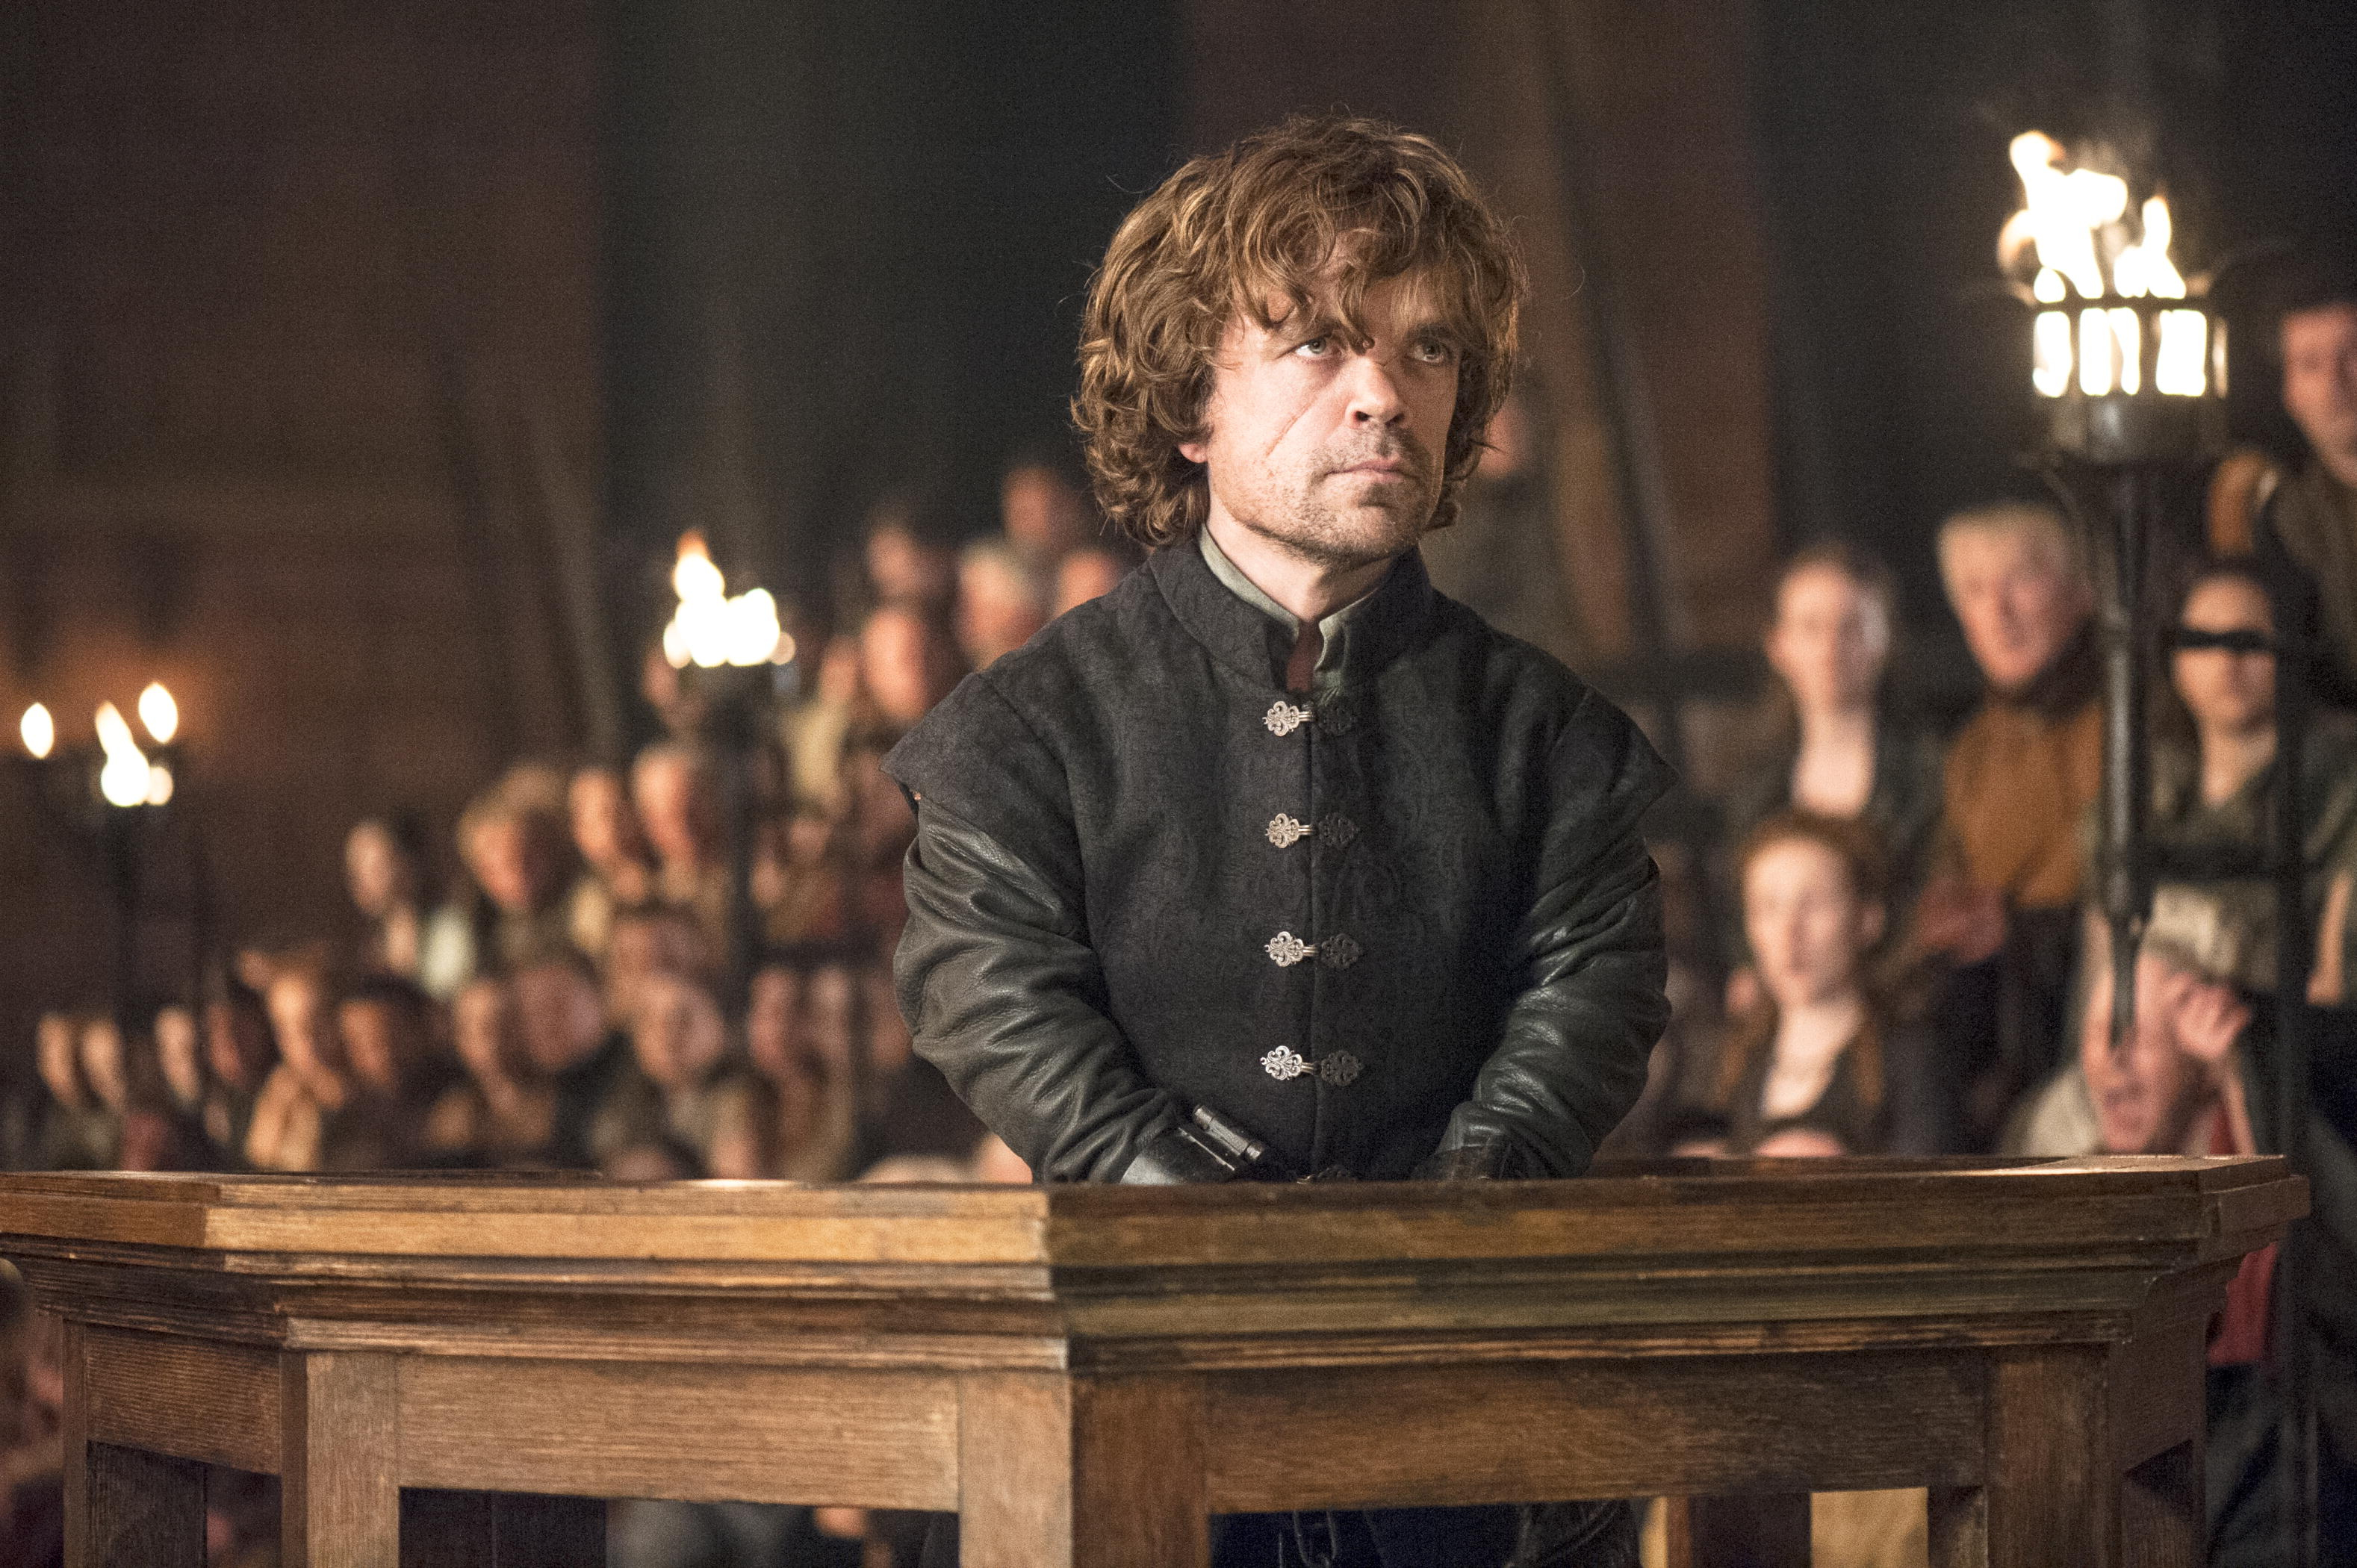 This photo provided by HBO shows Peter Dinklage as Tyrion Lannister on trial in a scene from season 4 of 'Game of Thrones'